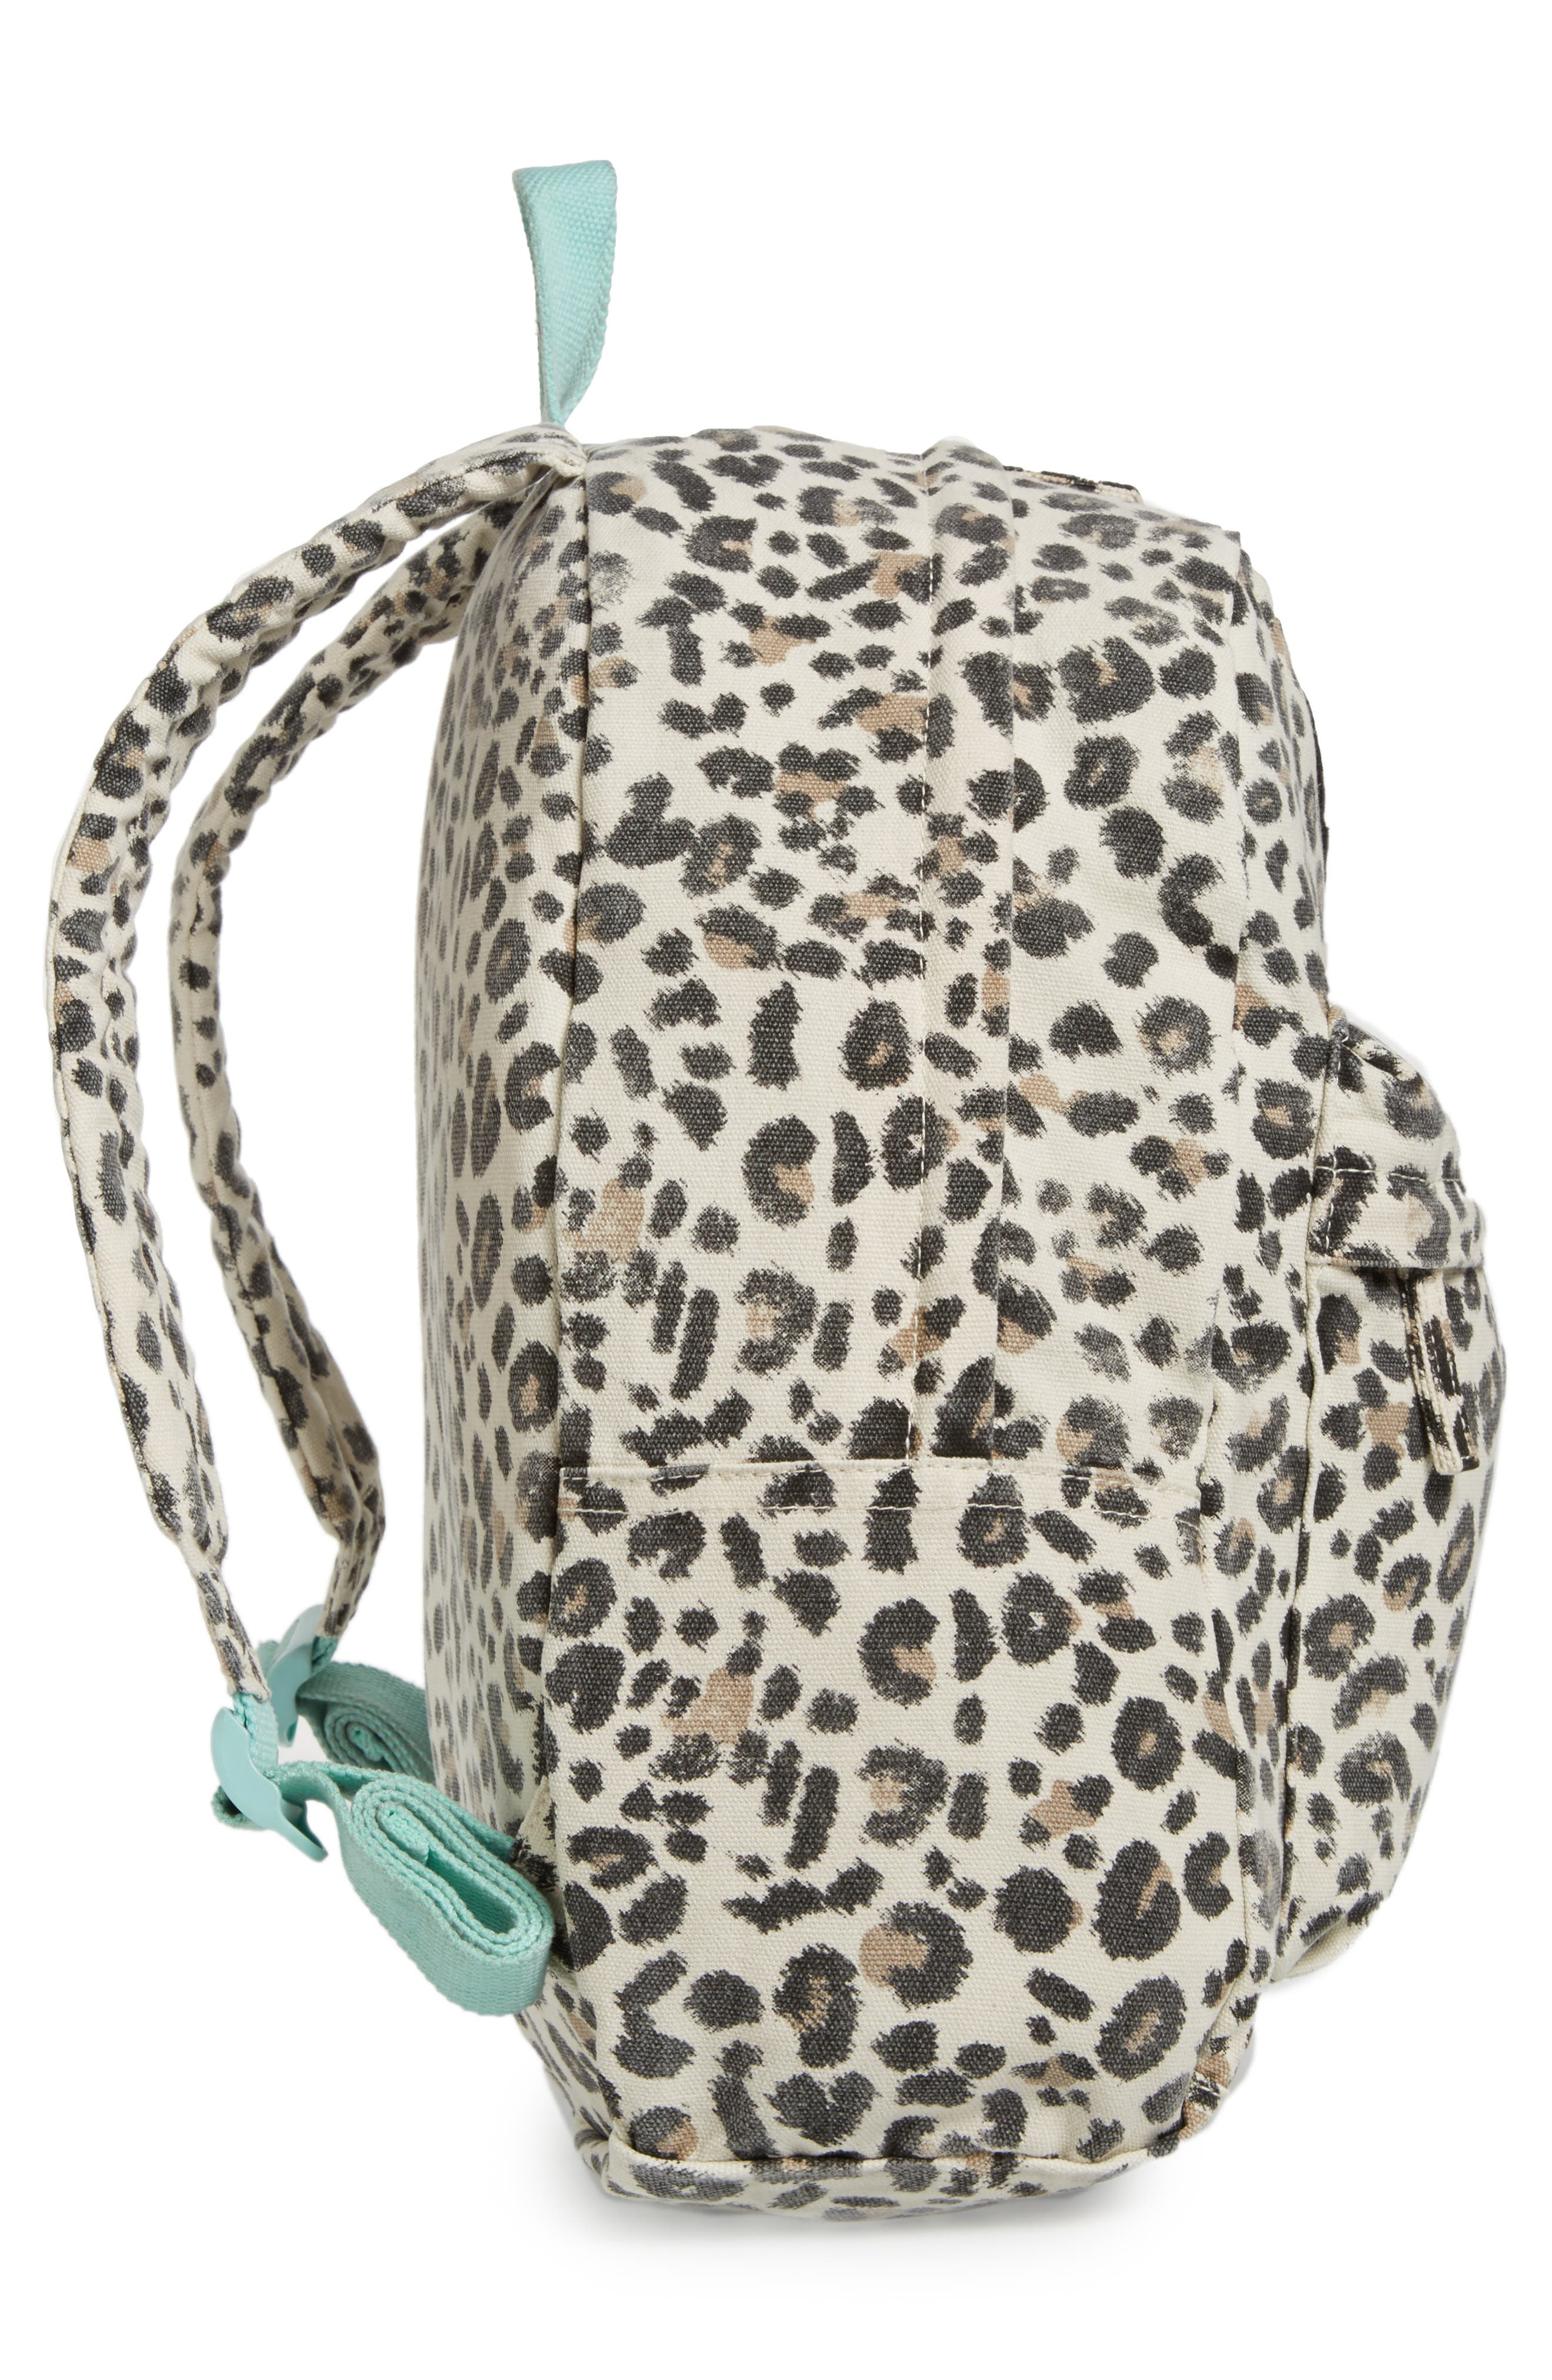 Play Date Canvas Backpack,                             Alternate thumbnail 4, color,                             004